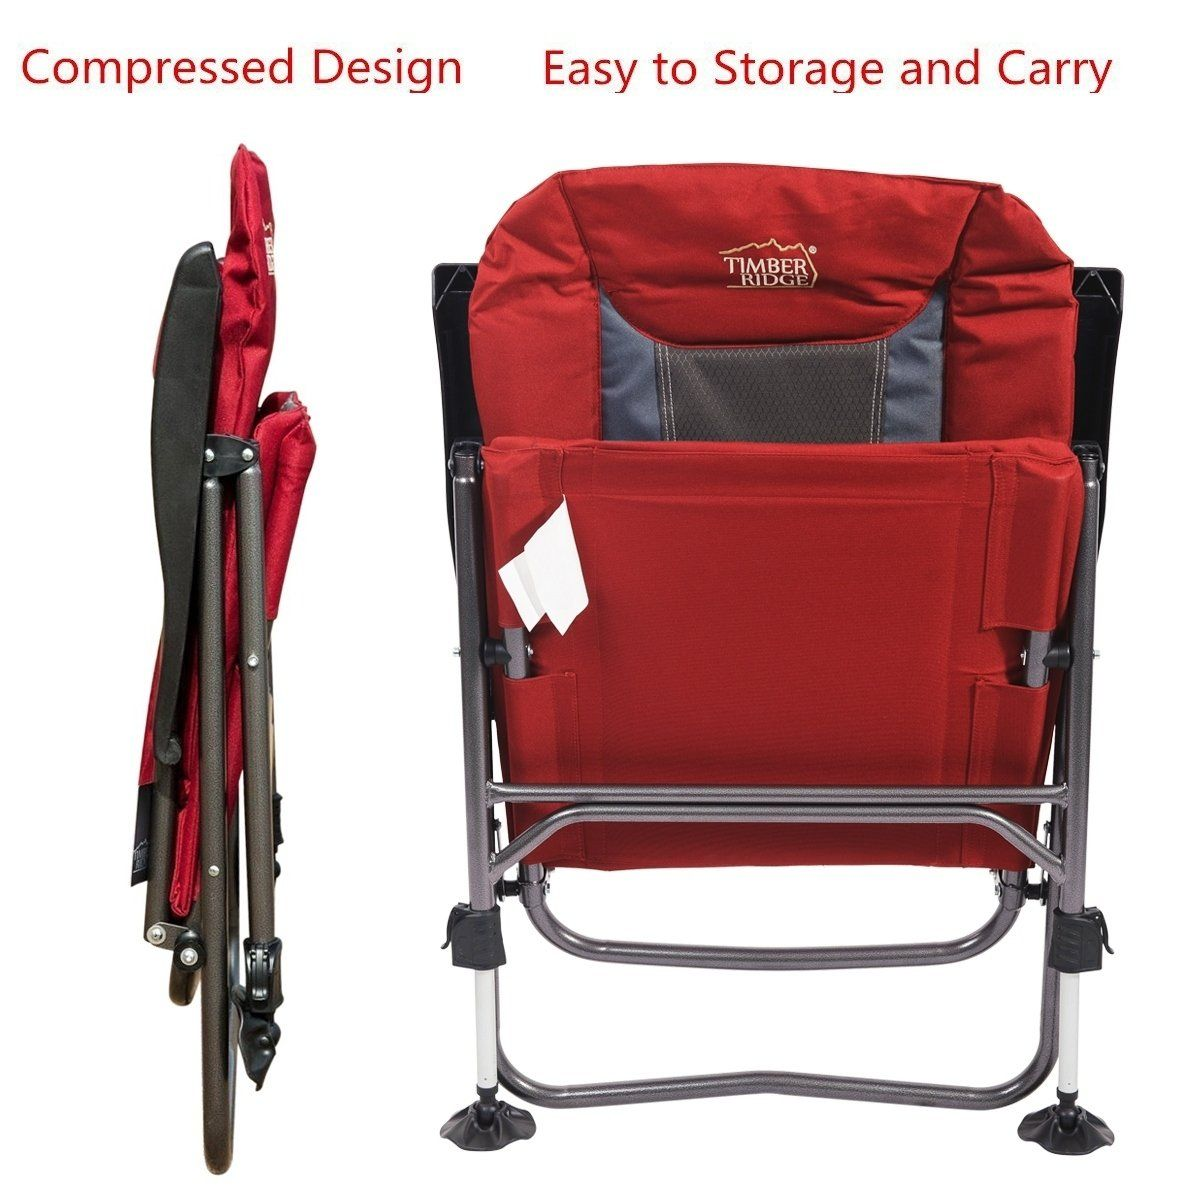 Camping Chair Folding Heavy Duty with Adjustable Reclining